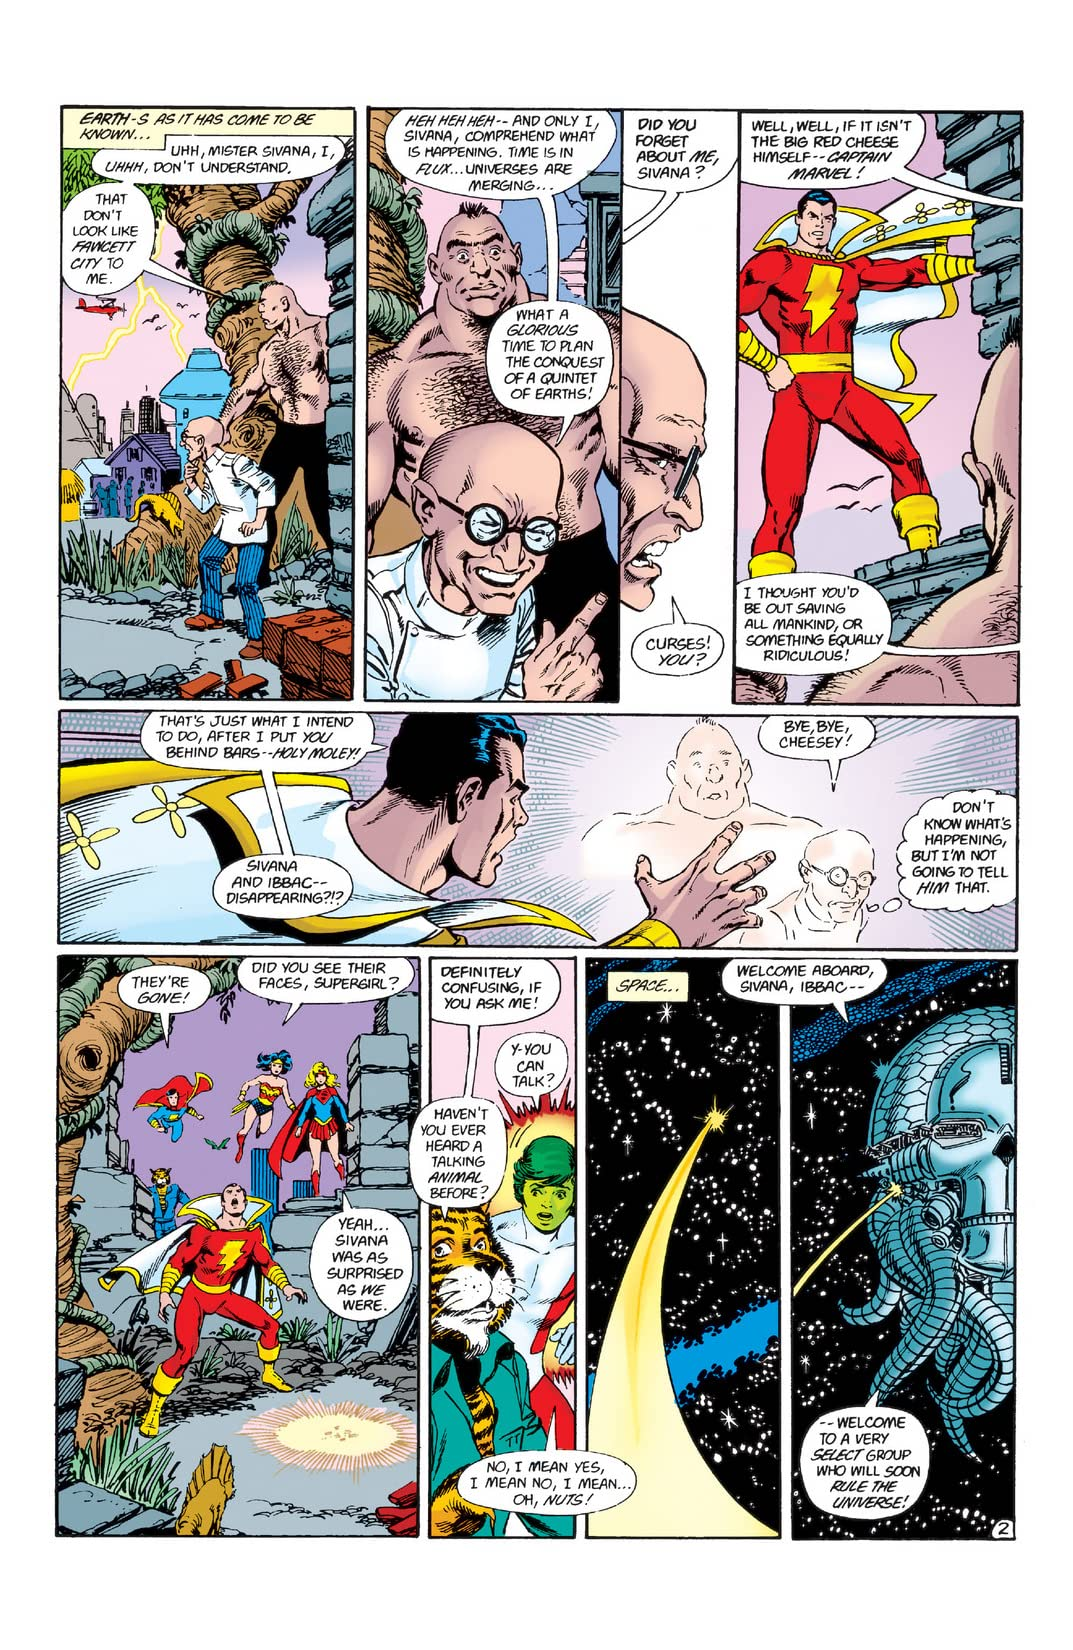 Crisis on Infinite Earths #7